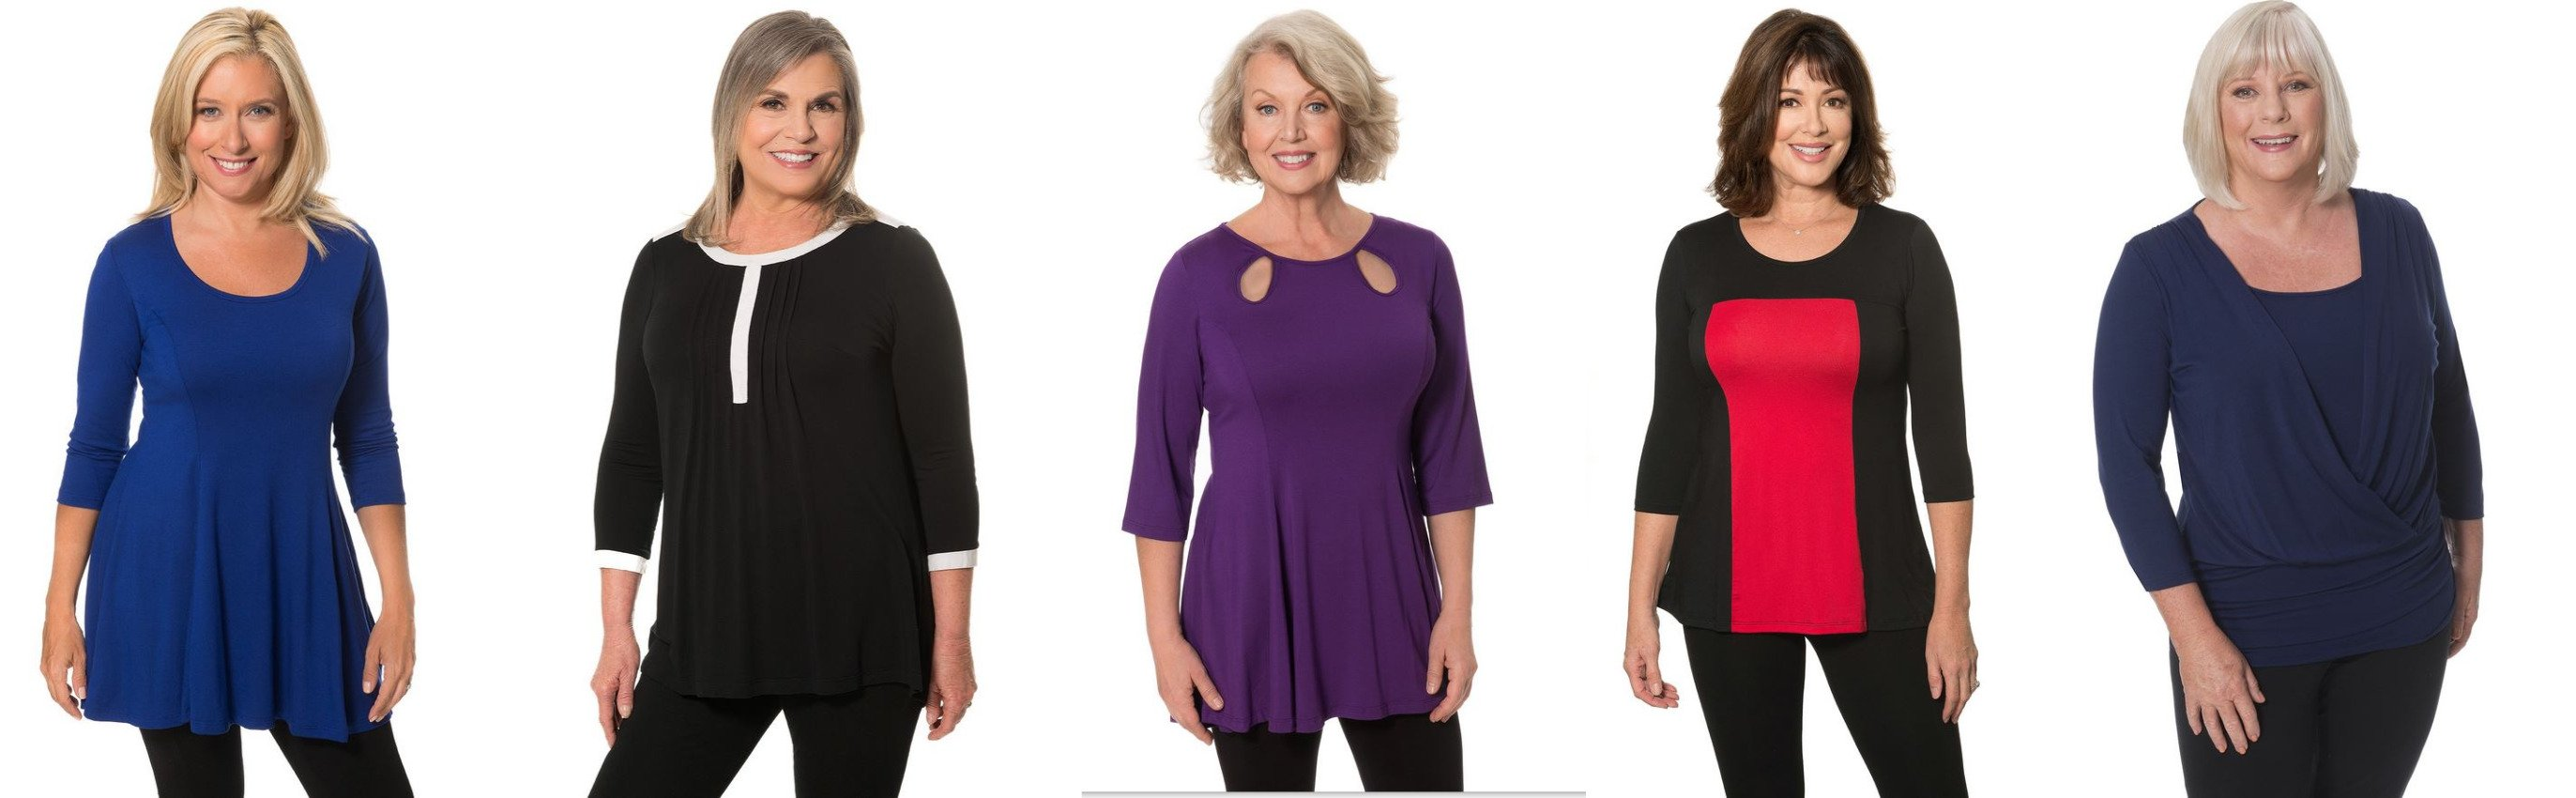 Covered Perfectly tops don't cling and hide tummy bulge #covered perfectly #hide tummy fat http://www.style-yourself-confident.com/hide-tummy-fat.html